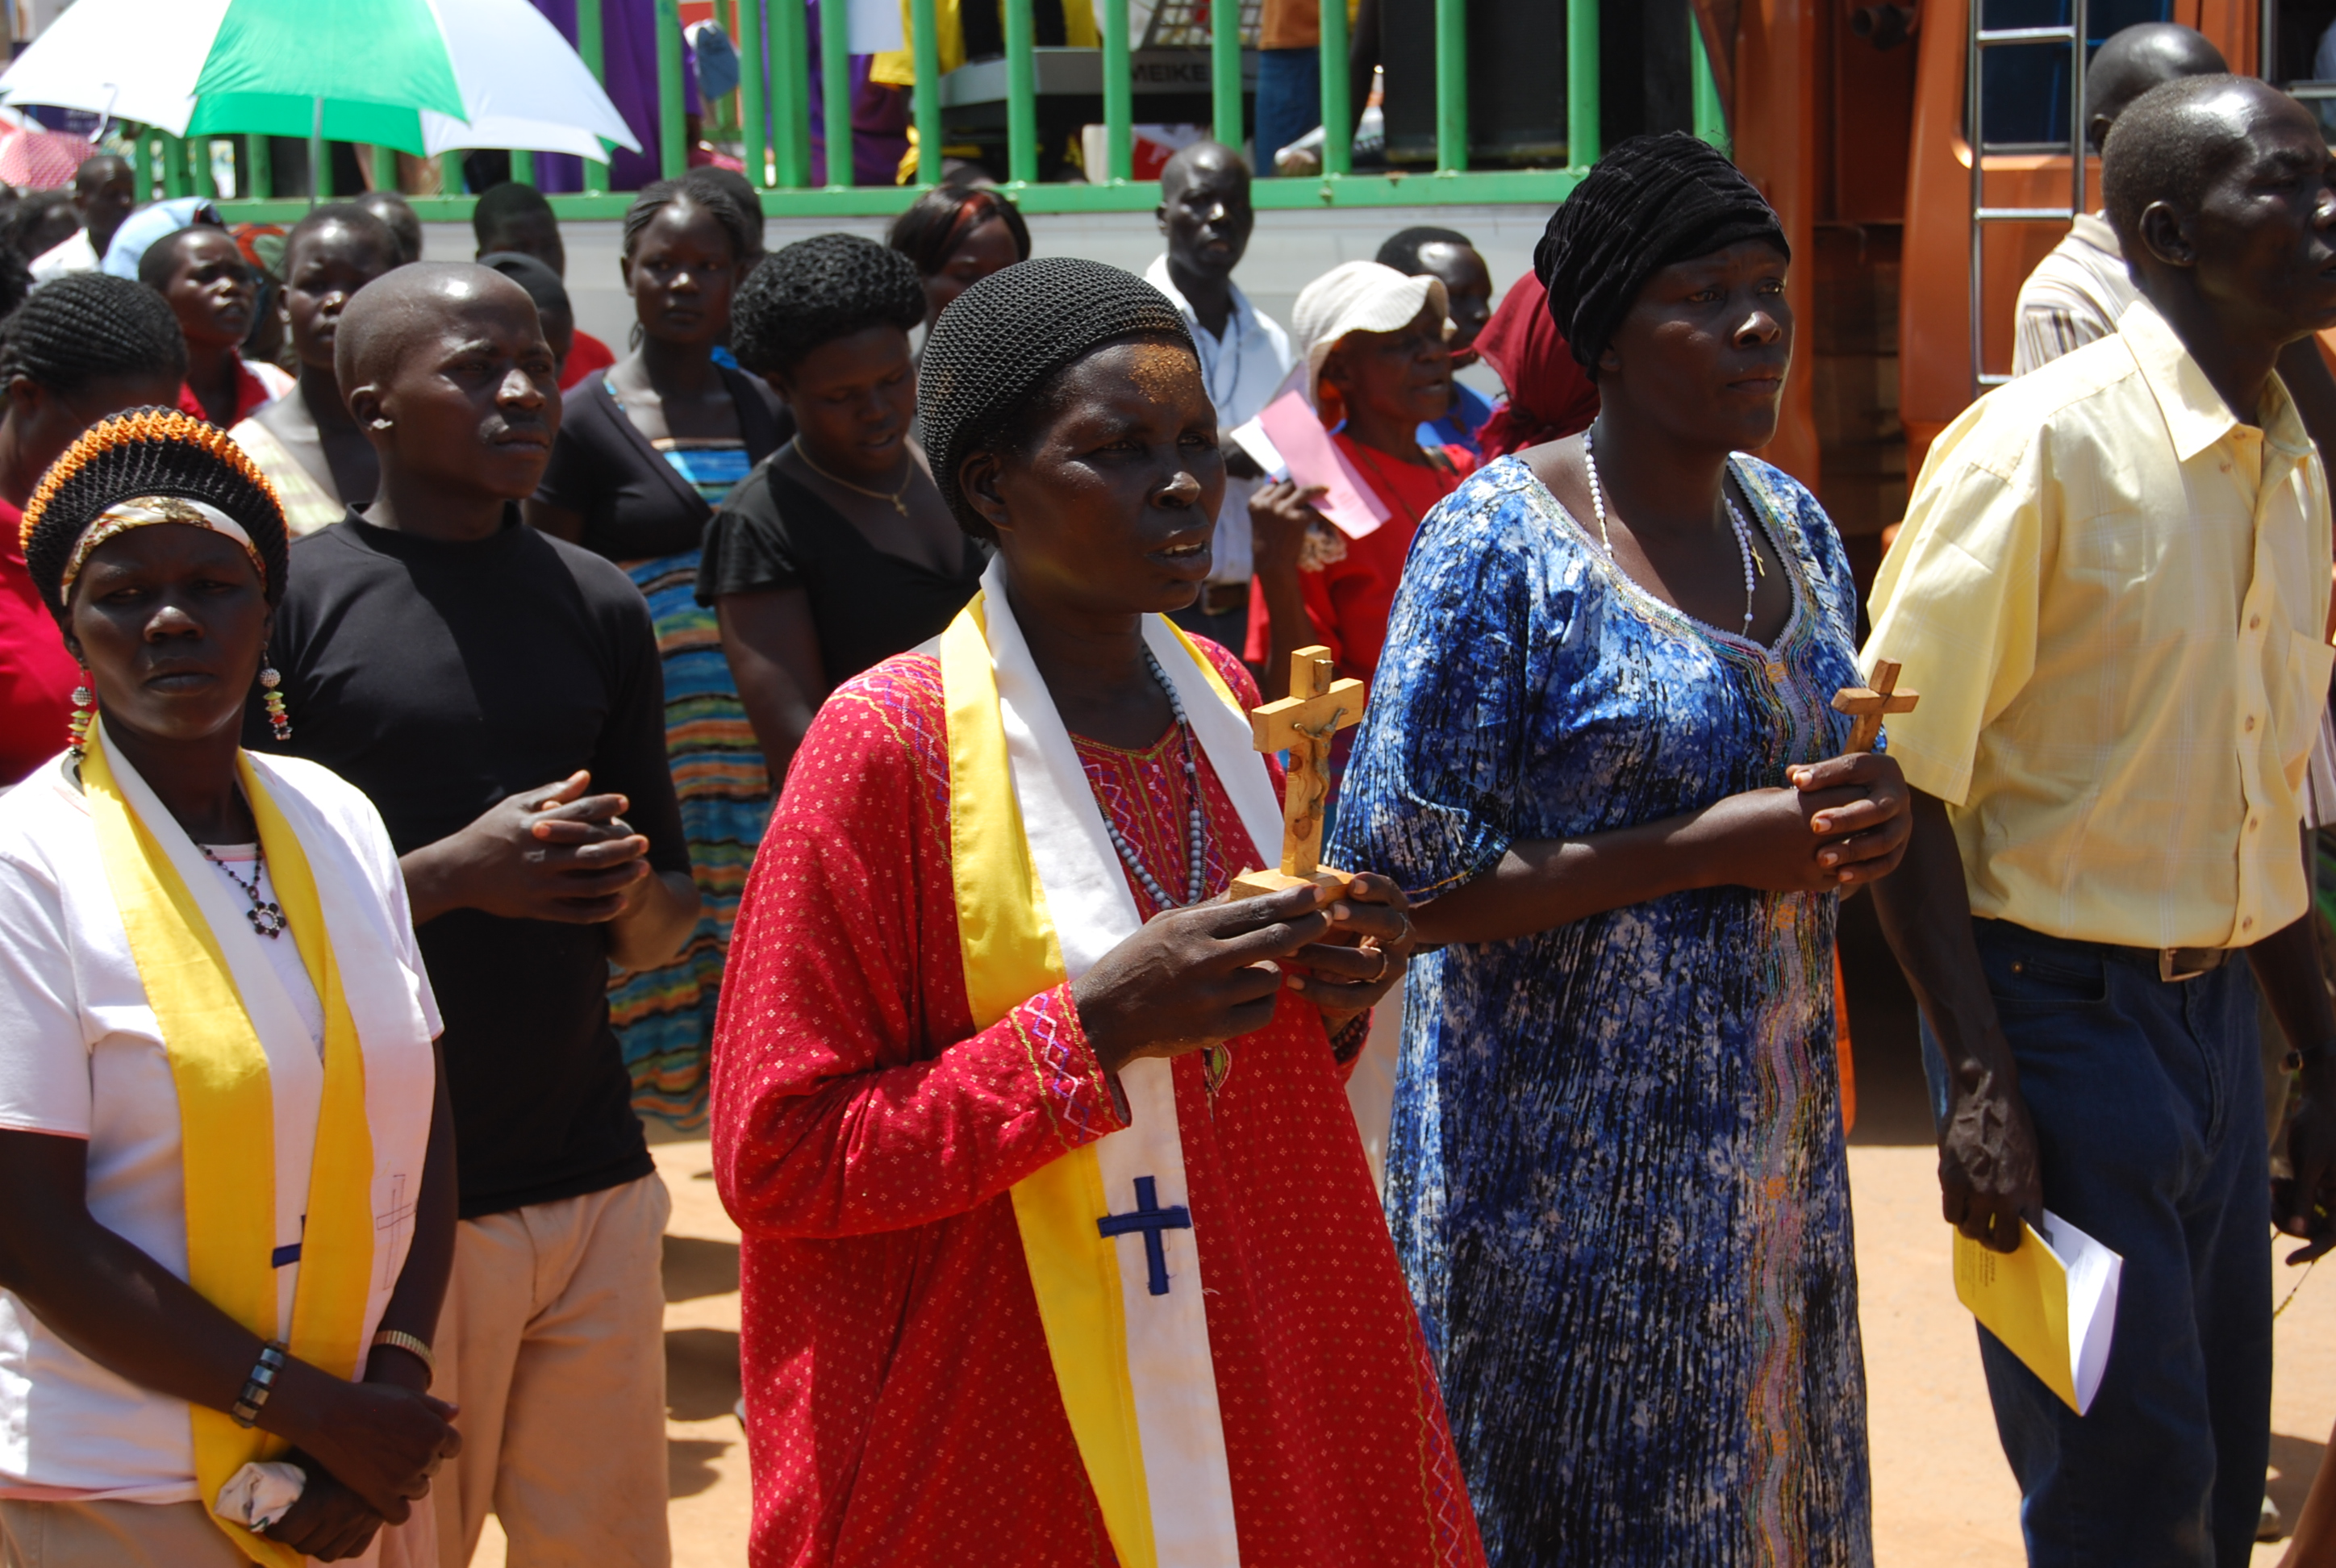 Christians take part in the Way of the Cross